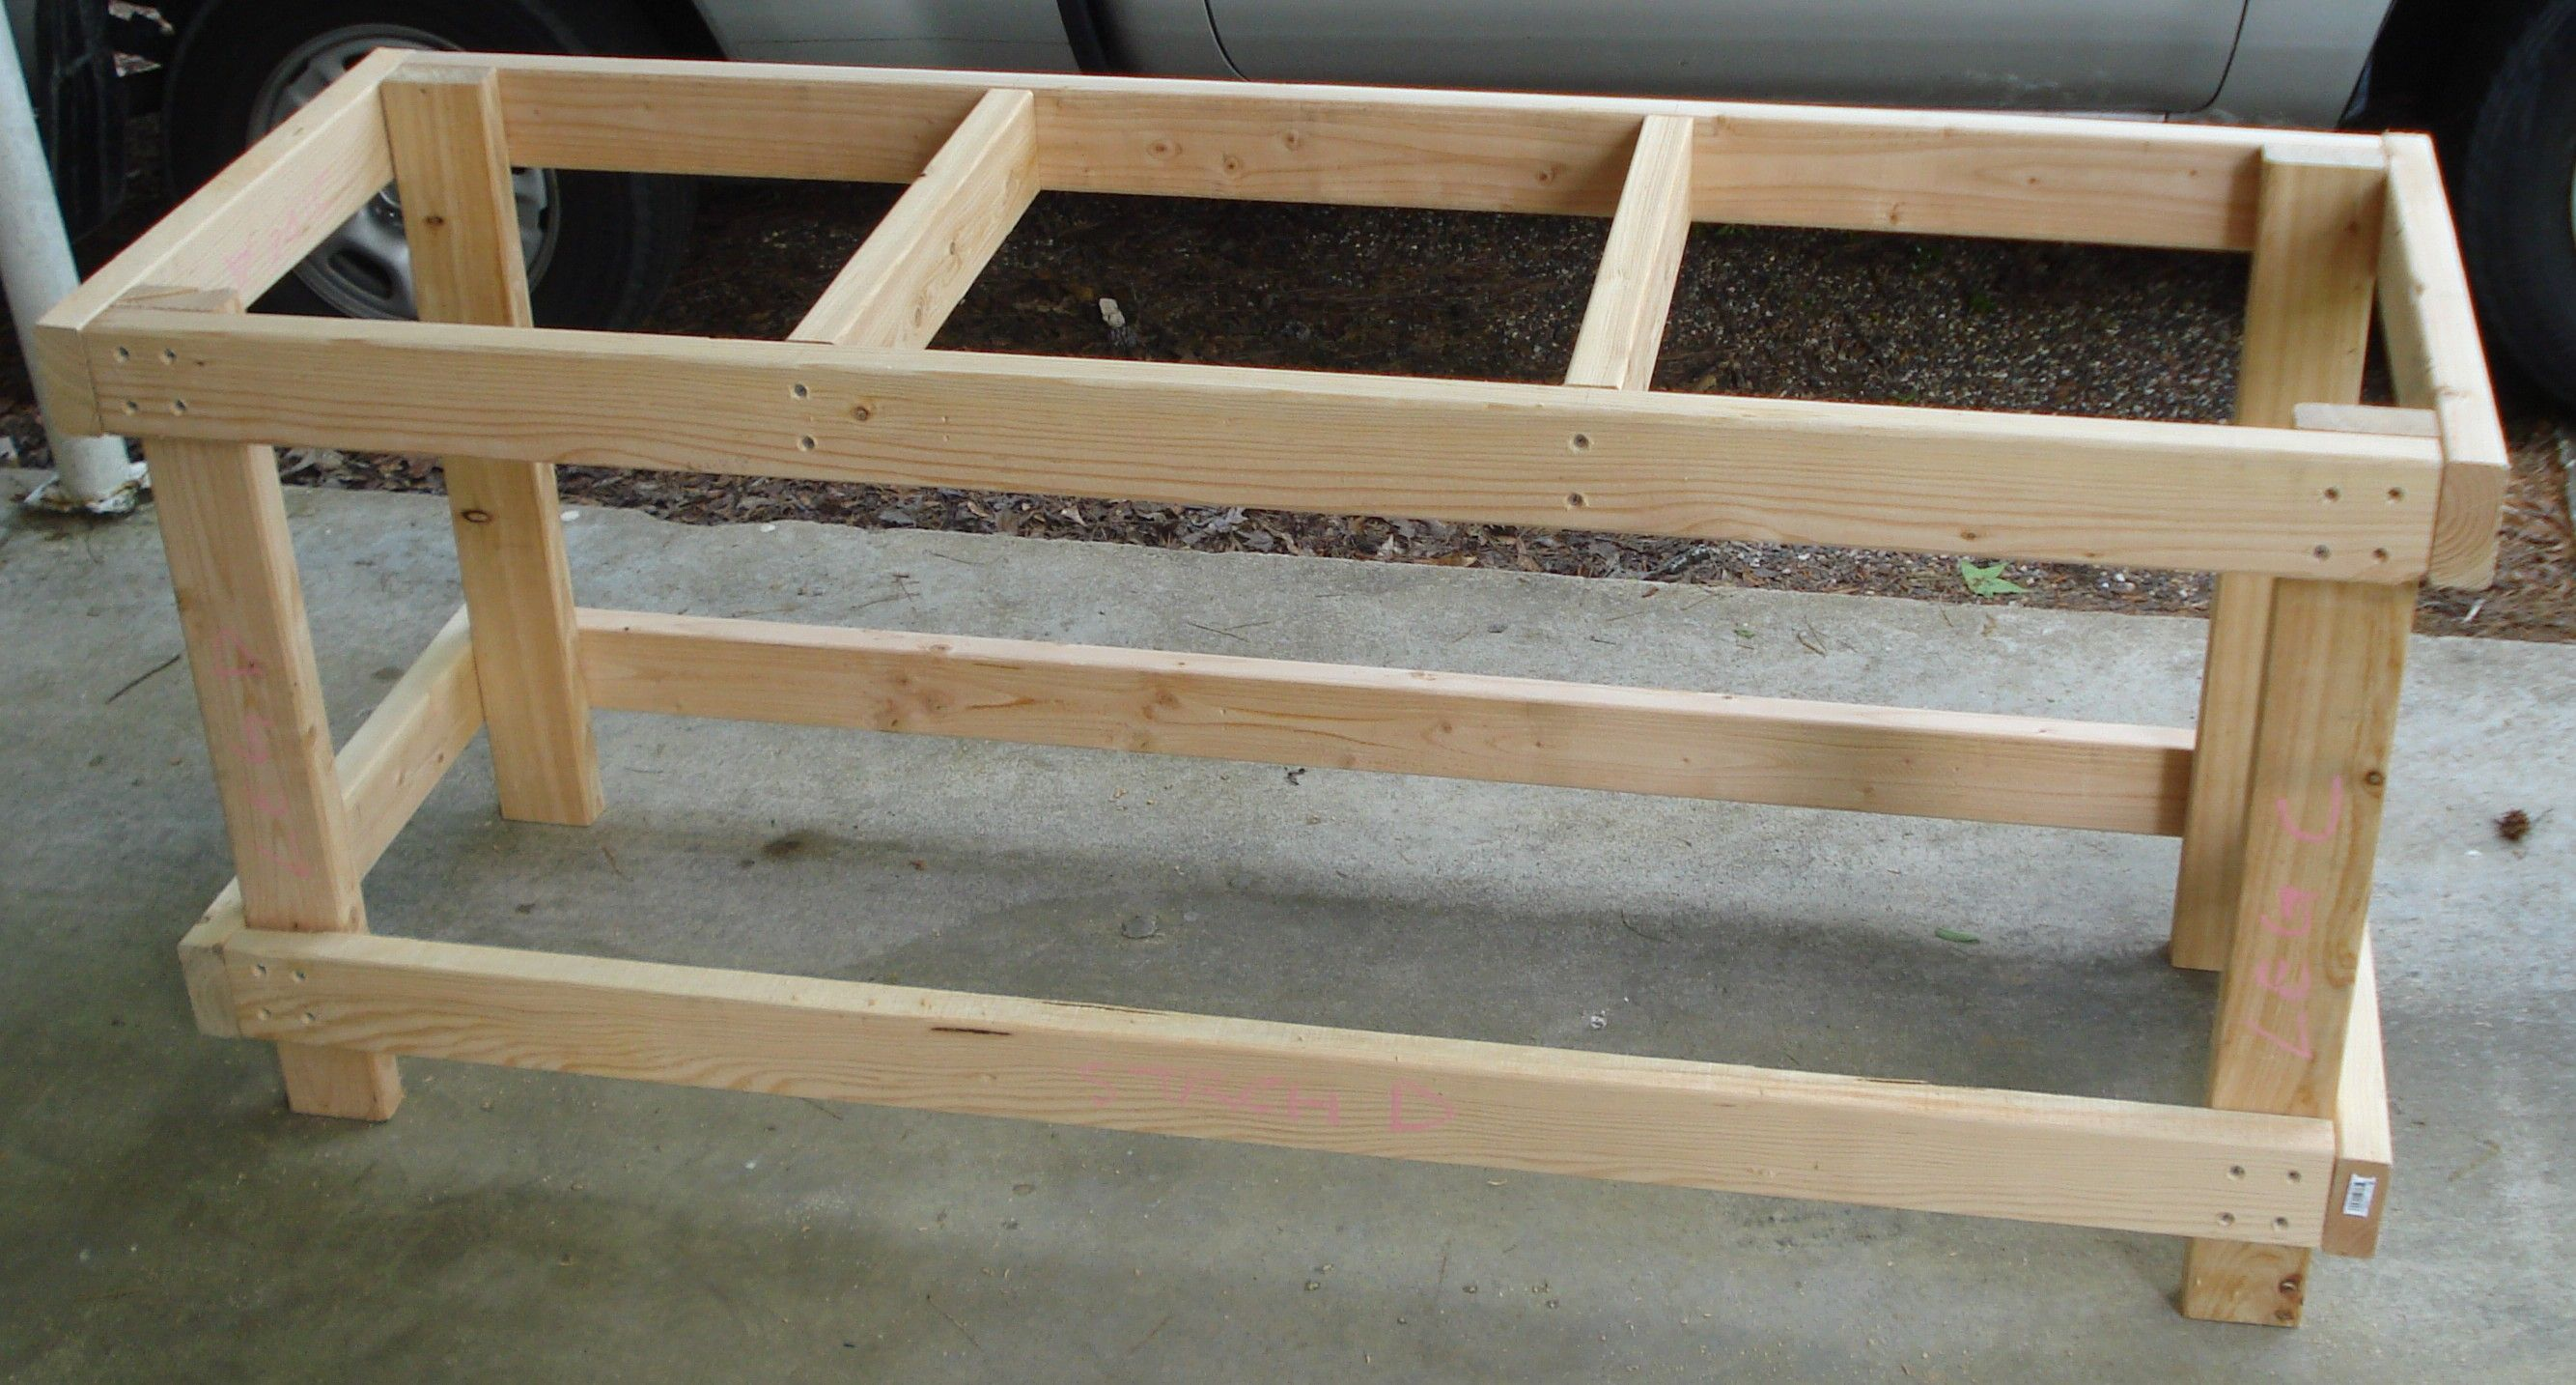 Simple Workbench Plans 2x4 Free Download L Shaped Patio